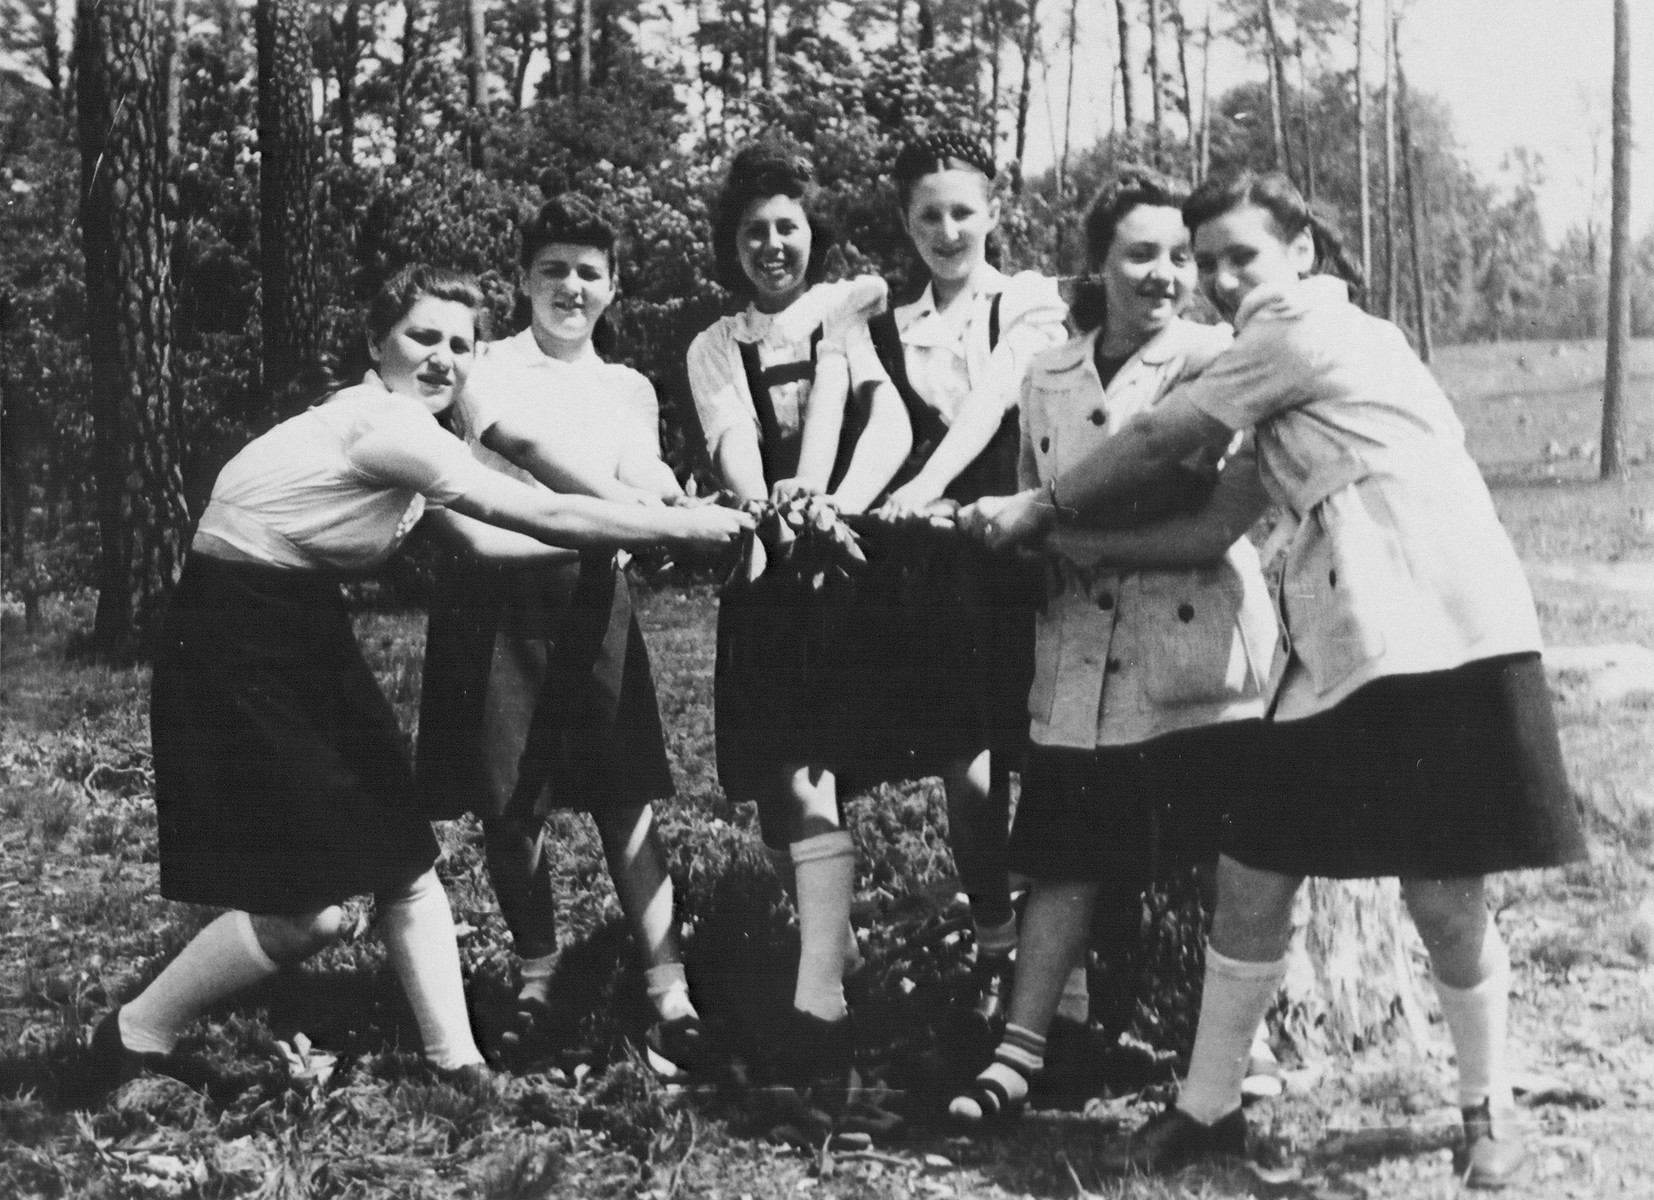 A group of Jewish DP girls from the Schlachtensee displaced persons camp pose outside with their hands joined during a Shavuot holiday outing.    Among those pictured is Regina Laks (third from the left).